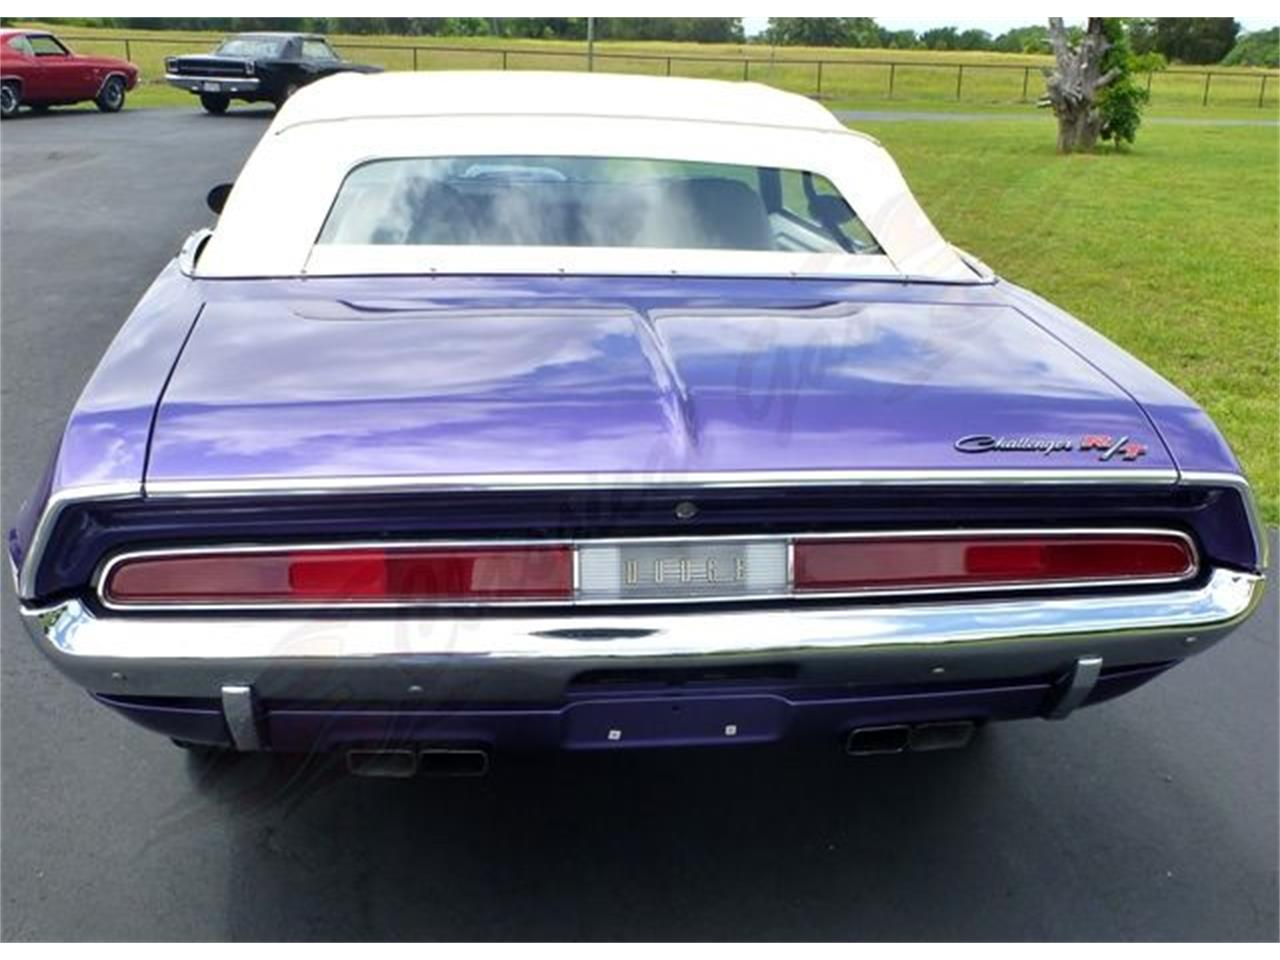 Large Picture of Classic 1970 Challenger R/T located in Arlington Texas - $149,500.00 Offered by Classical Gas Enterprises - QKBE